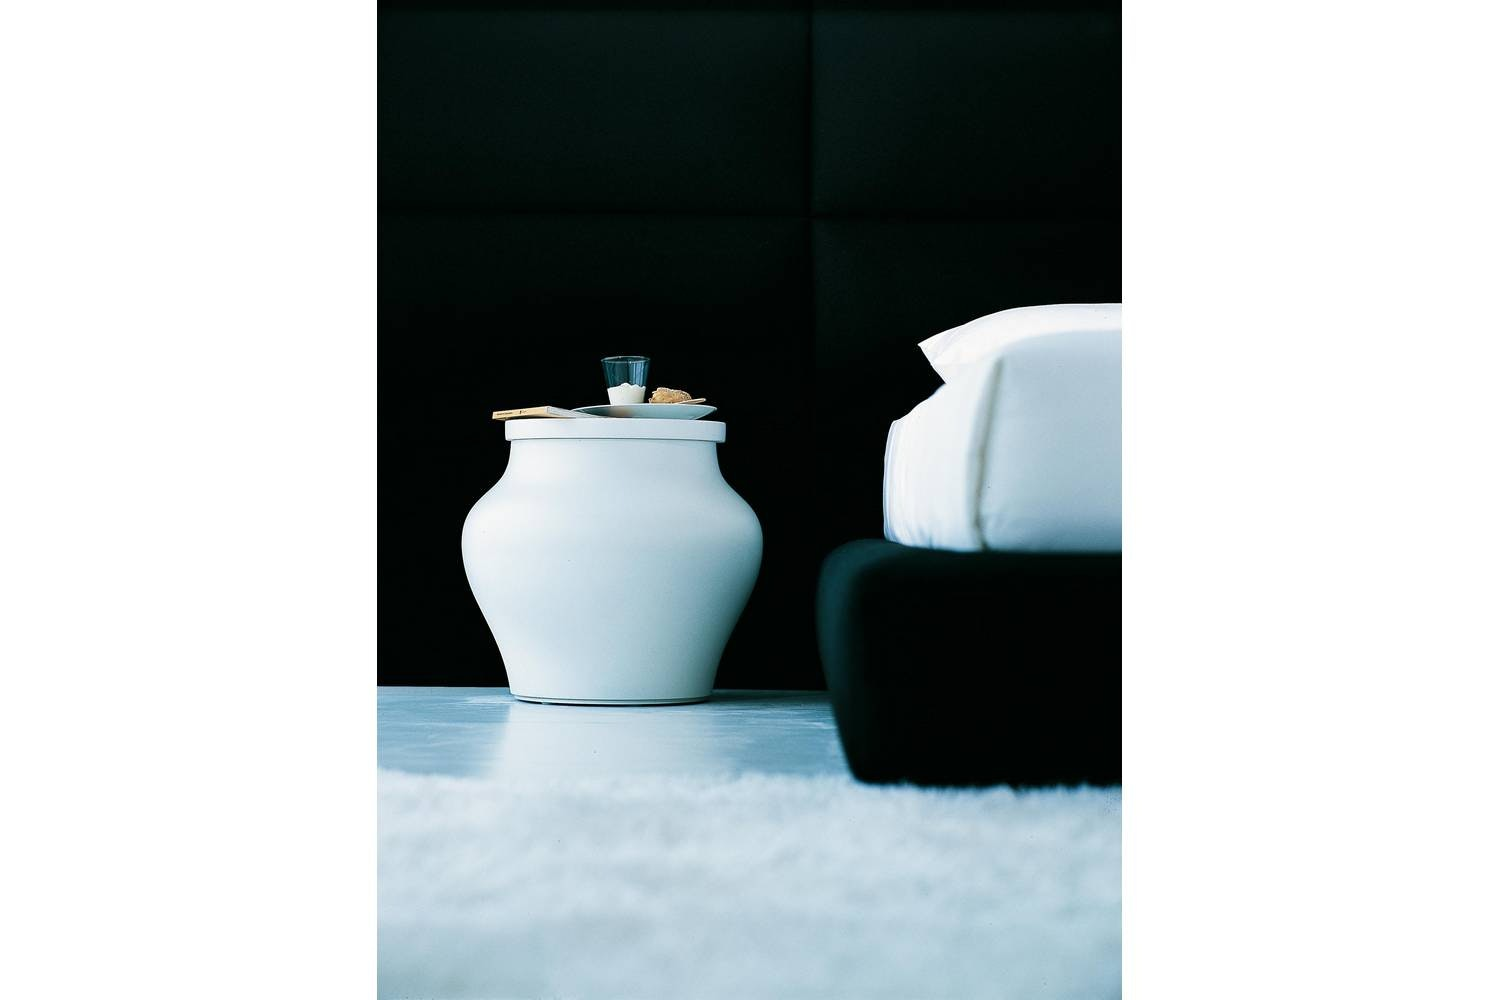 Dream Ottoman by Marcel Wanders for Poliform